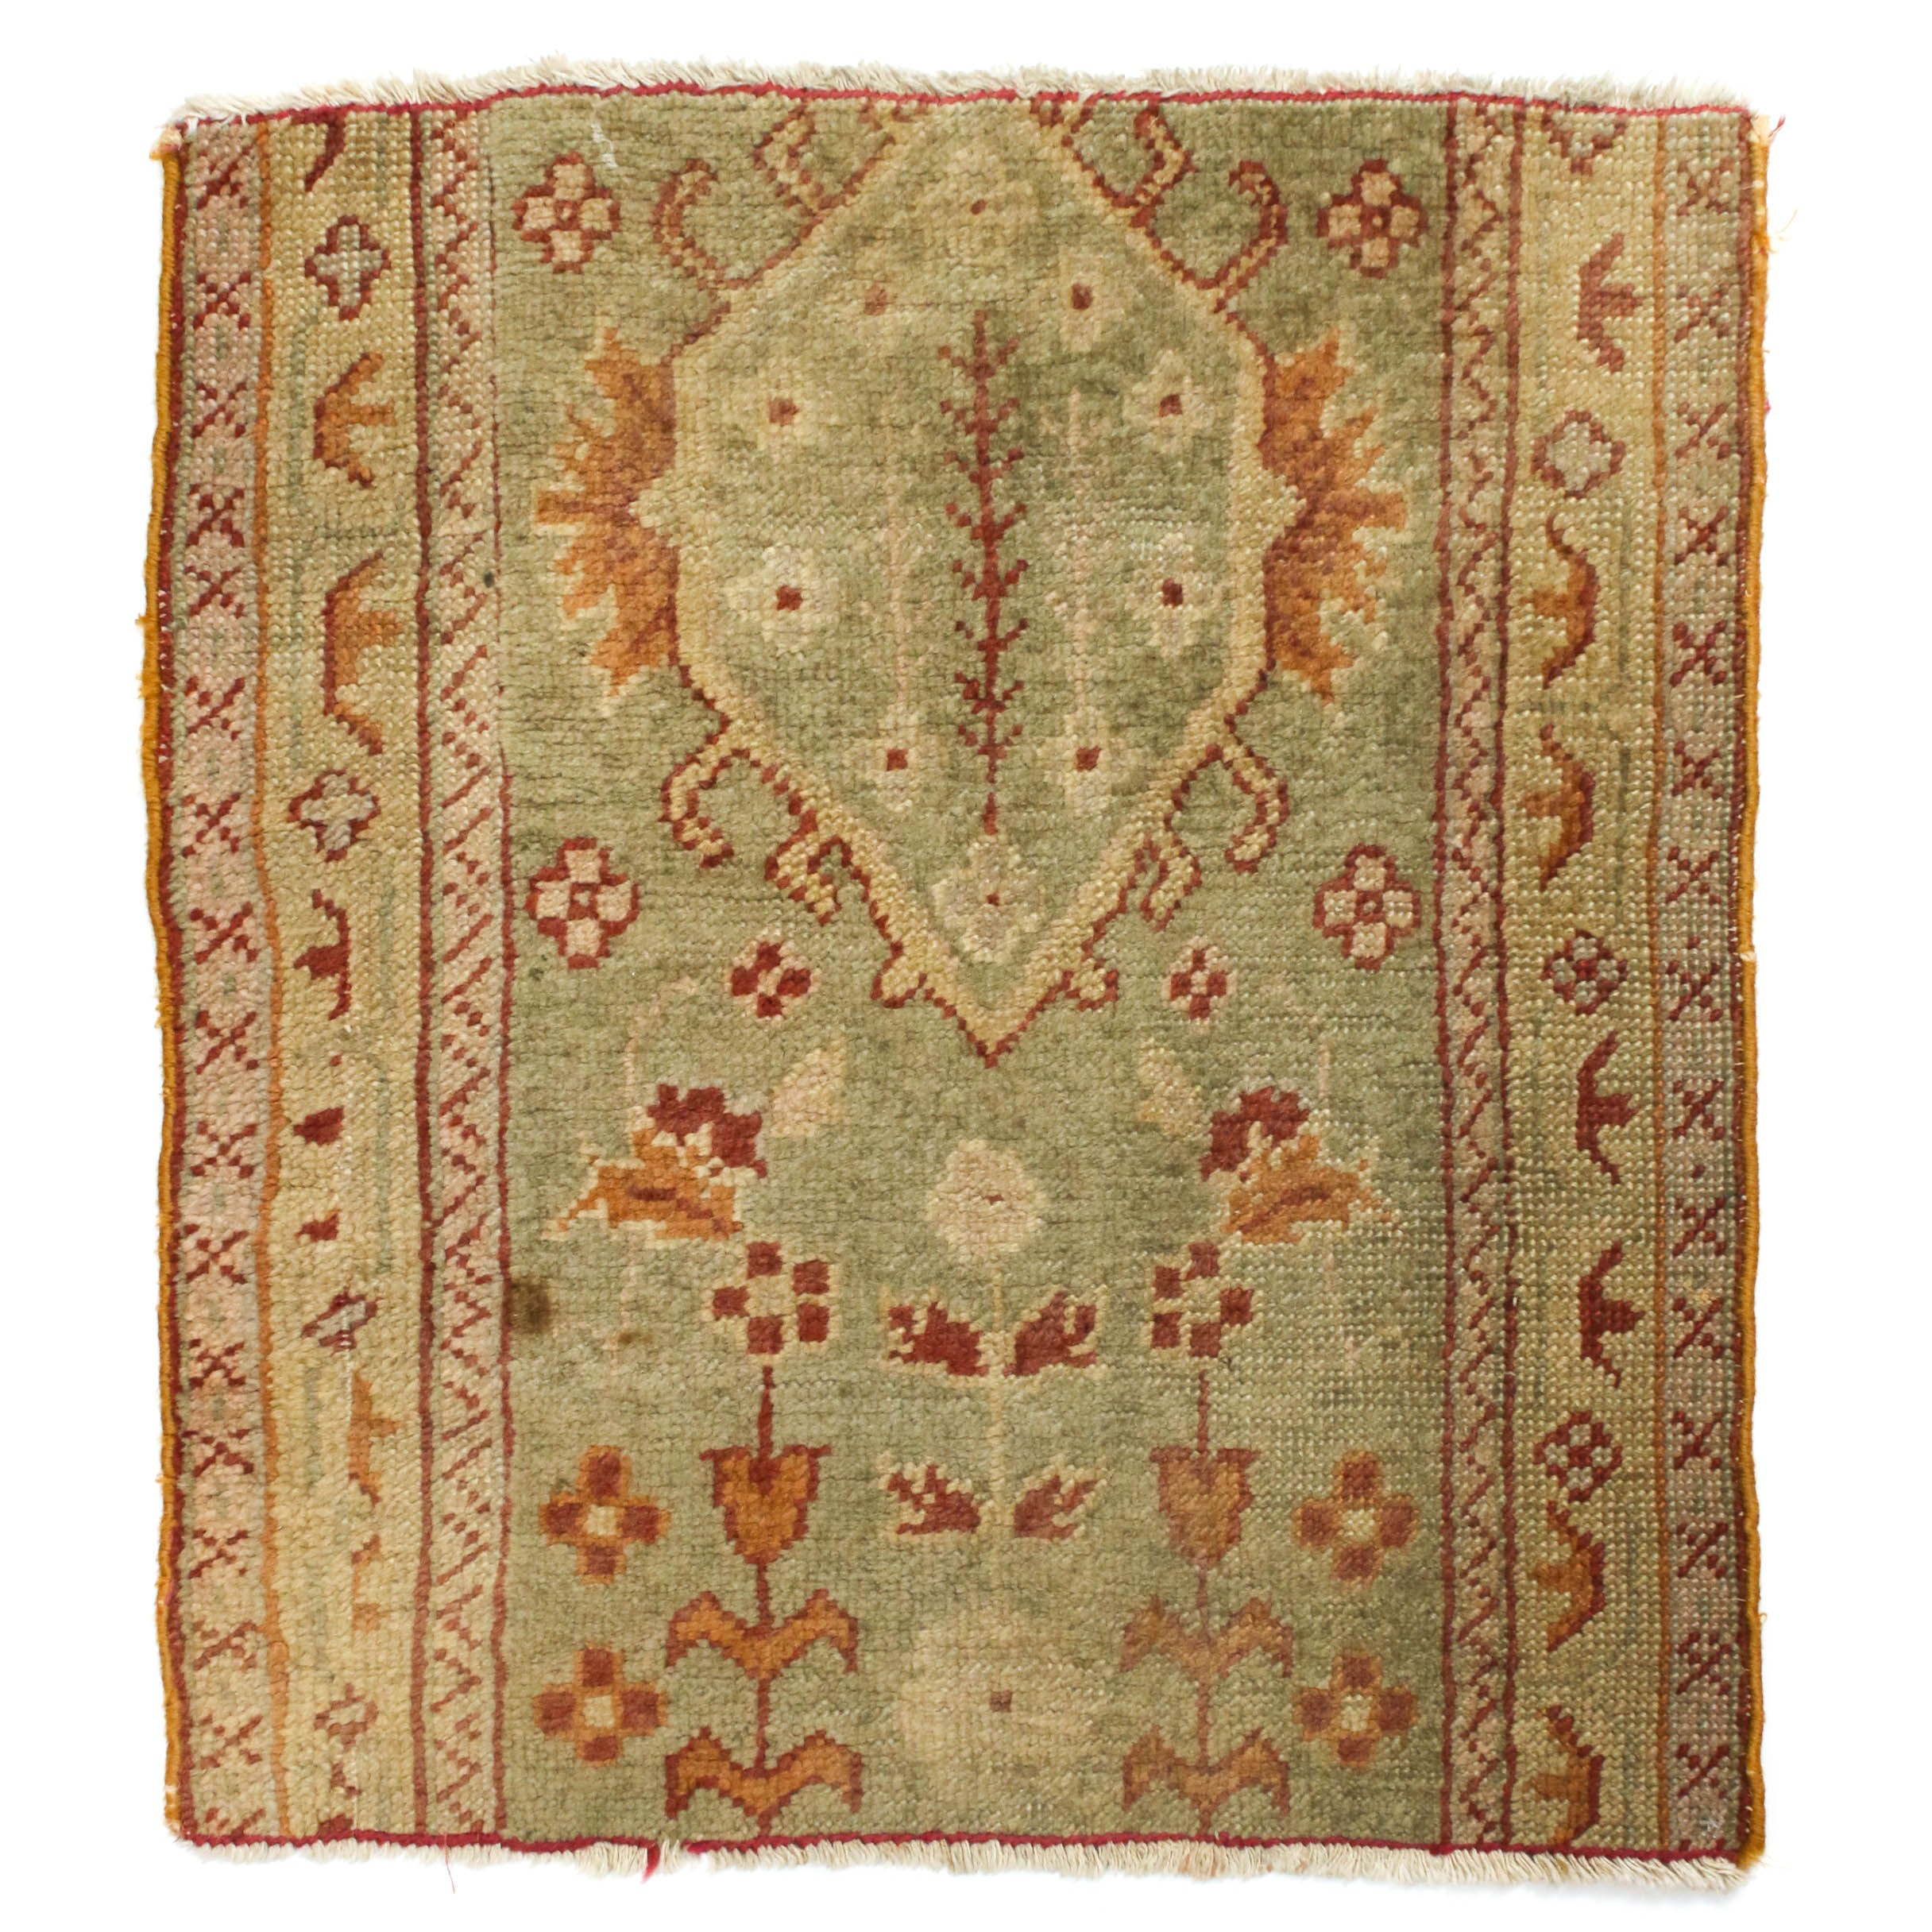 2'1 x 2'5 Hand-Knotted Turkish Oushak Rug Fragment, Circa 1920